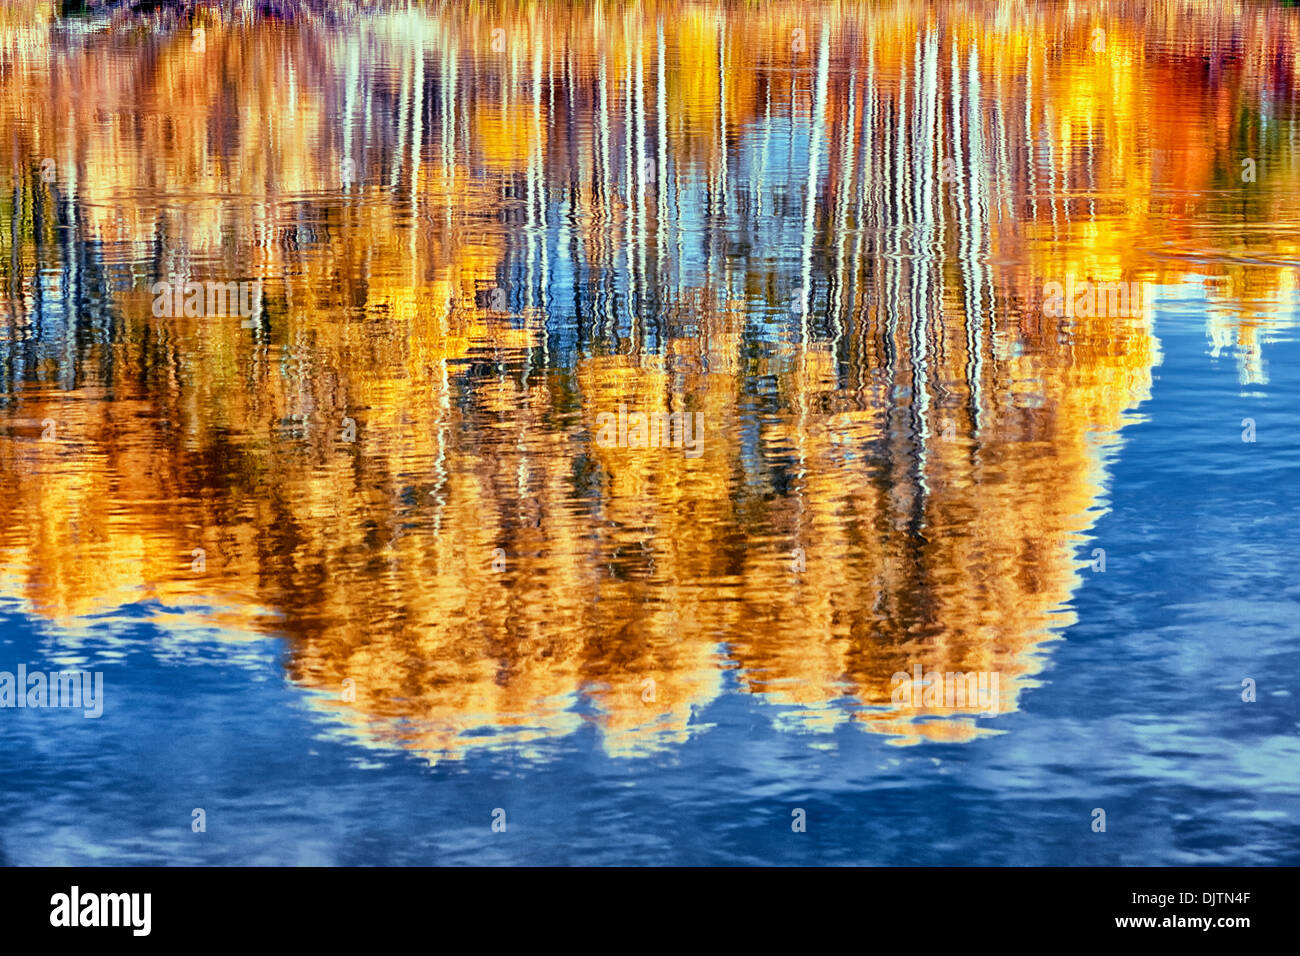 Autumn gold of aspen trees shimmer in central Oregon's Deschutes River. - Stock Image